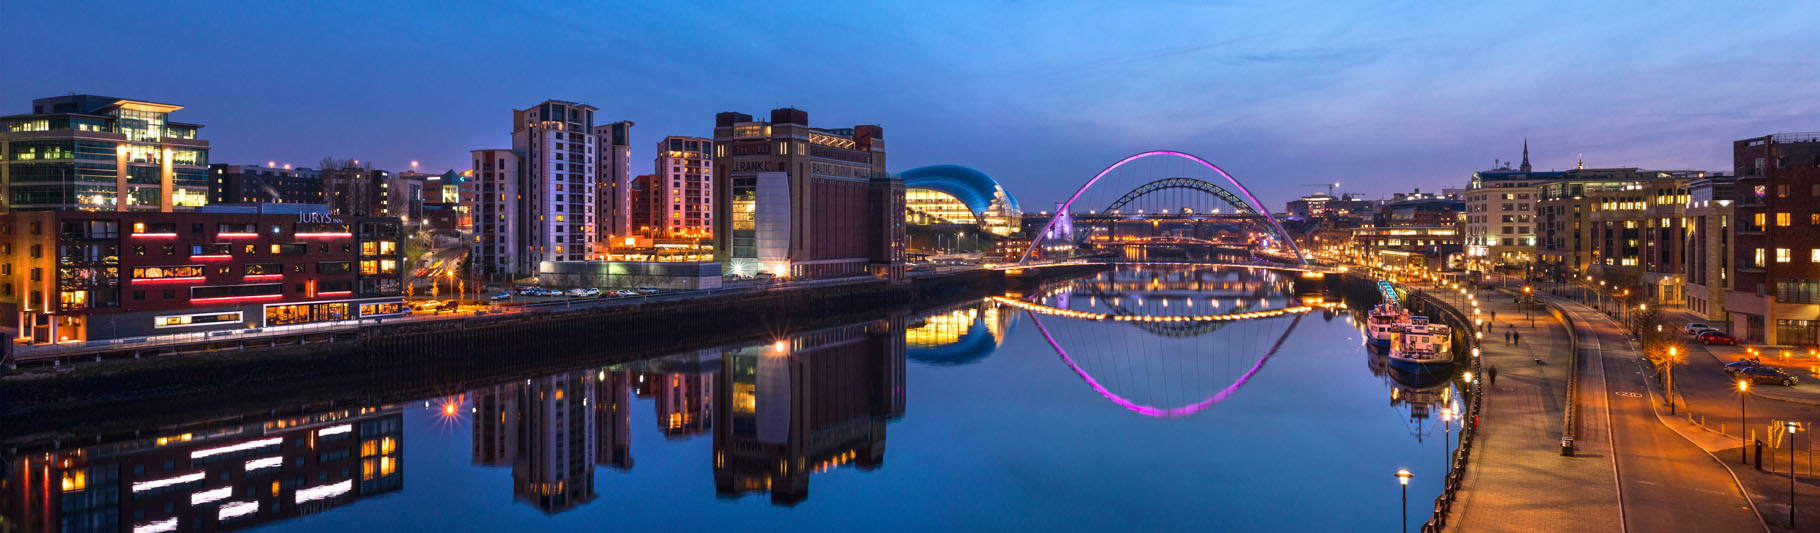 Cityscape of Newcastle upon Tyne